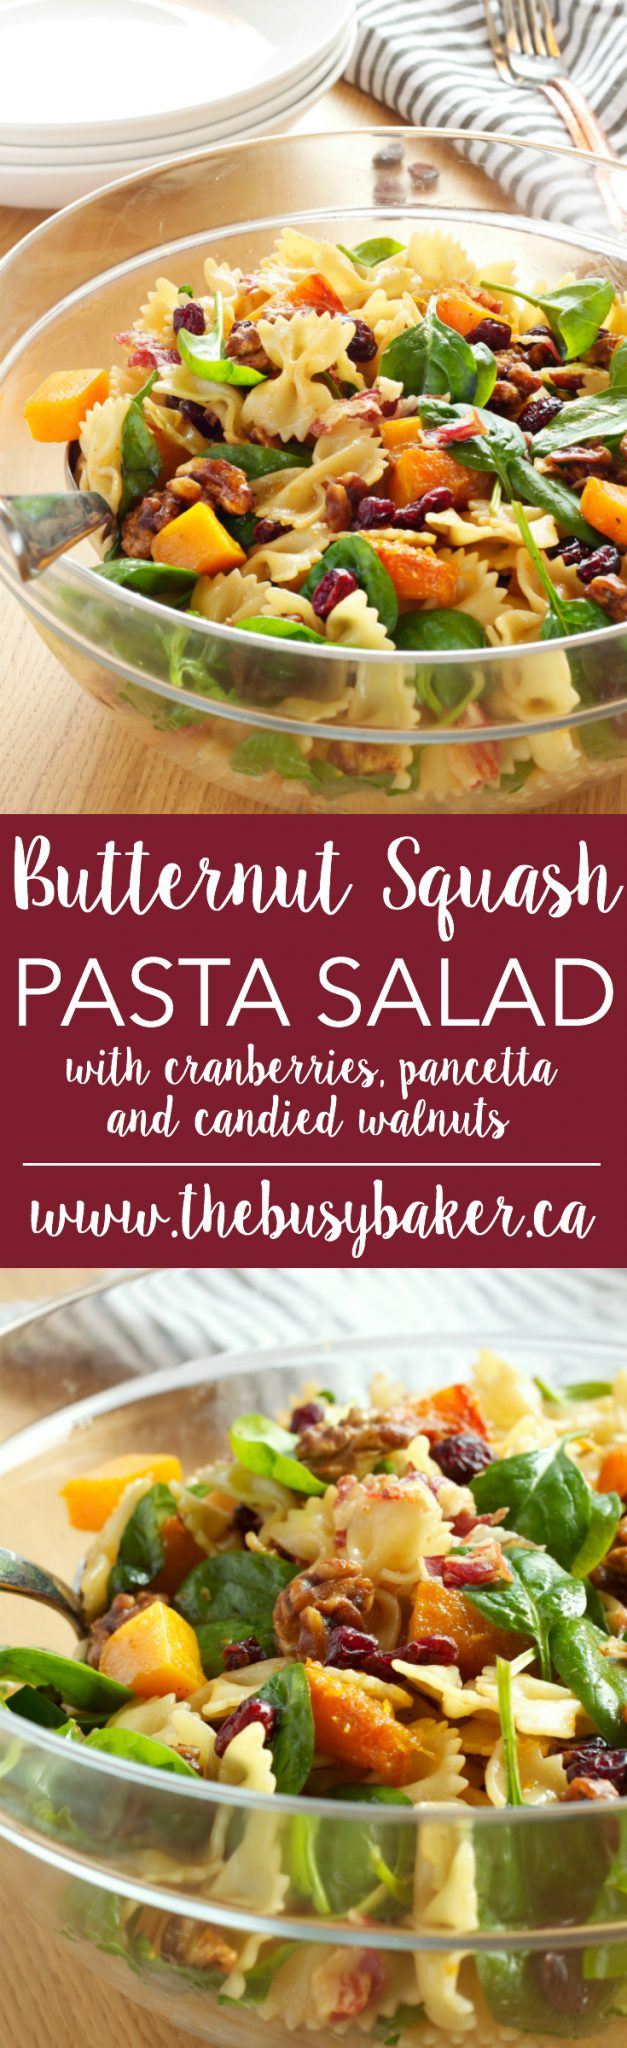 This Butternut Squash Pasta Salad is a delicious holiday side dish for fall and winter made with Cranberries, Pancetta, and Candied Walnuts! Recipe from thebusybaker.ca! via @busybakerblog